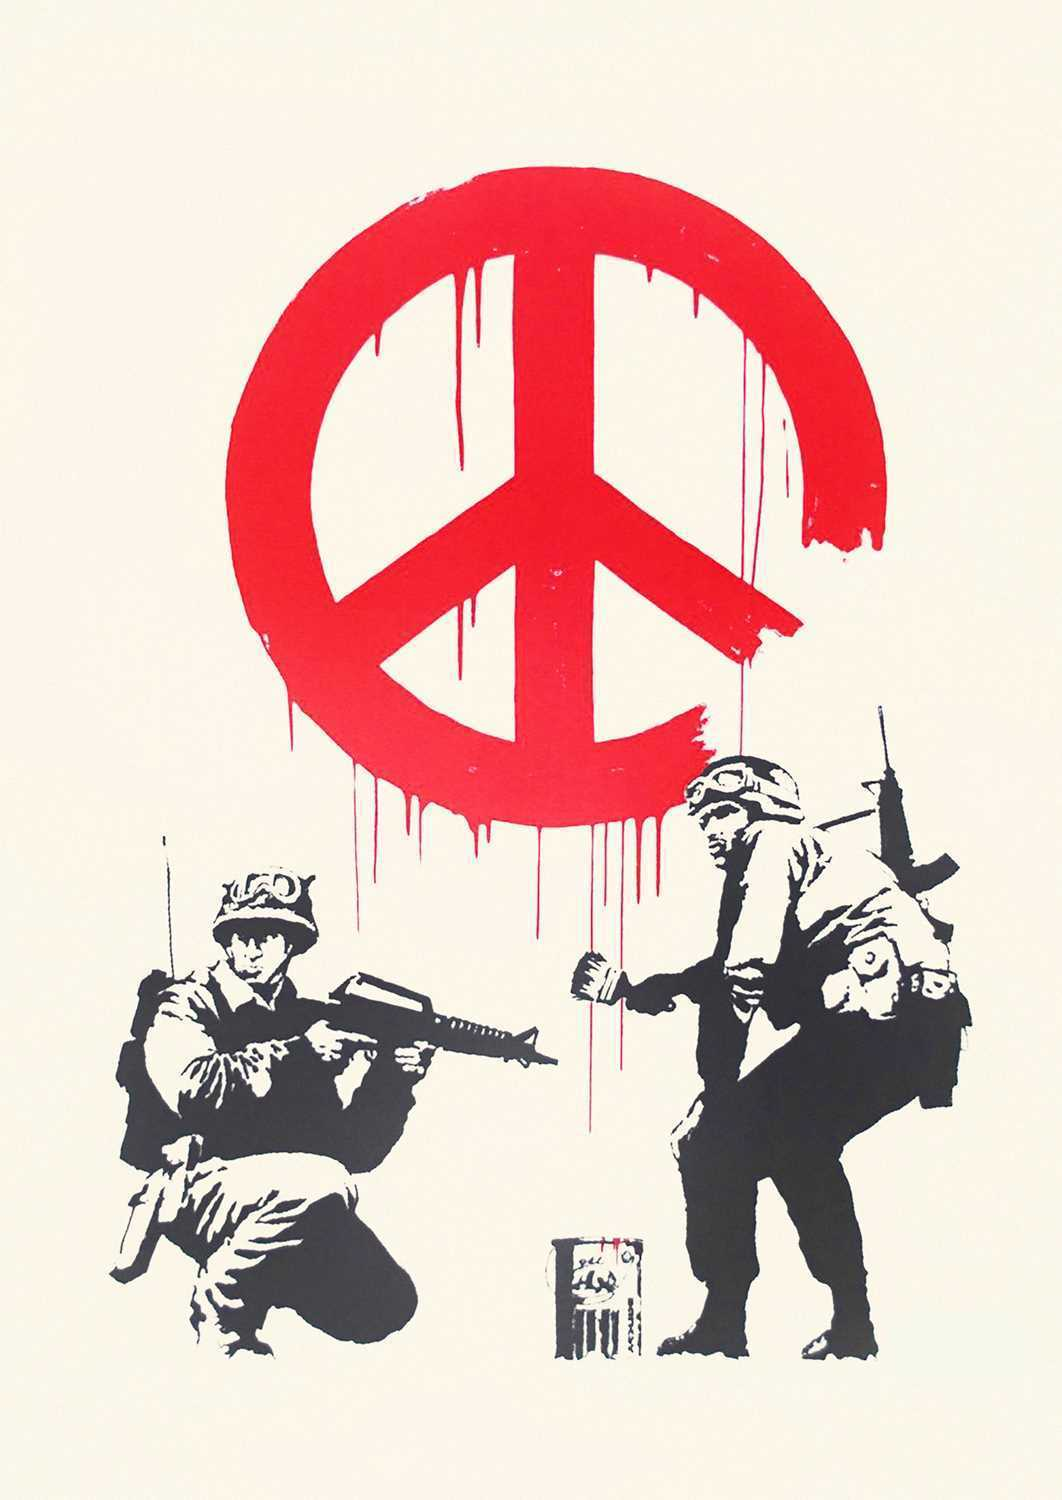 Lot 182 - Banksy (British 1974-), 'CND Soldiers', 2005